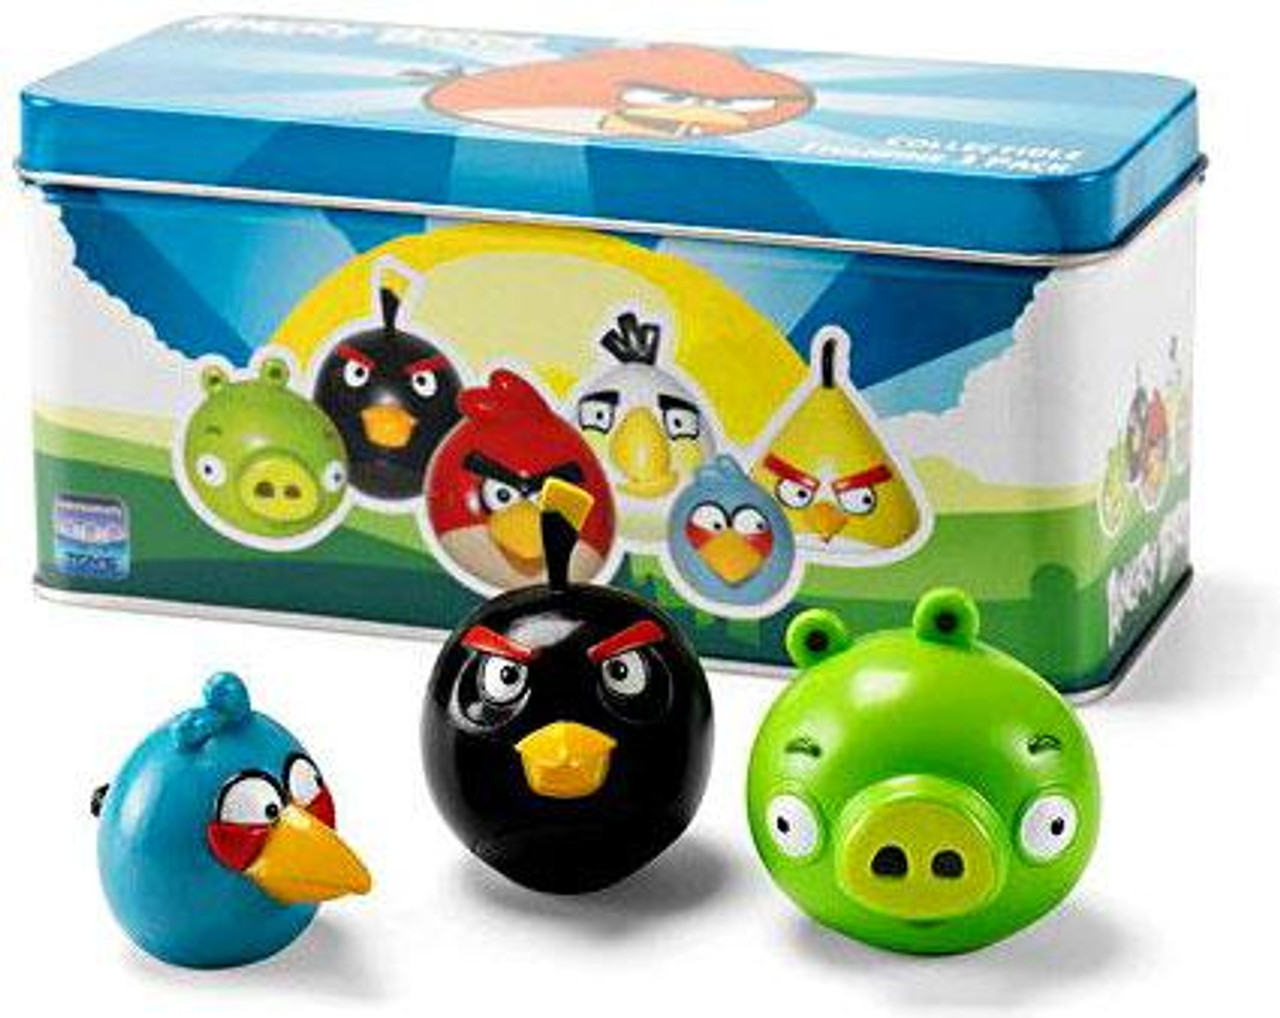 Angry Birds Collectbile Figurines Collectible Tin Figure 3-Pack